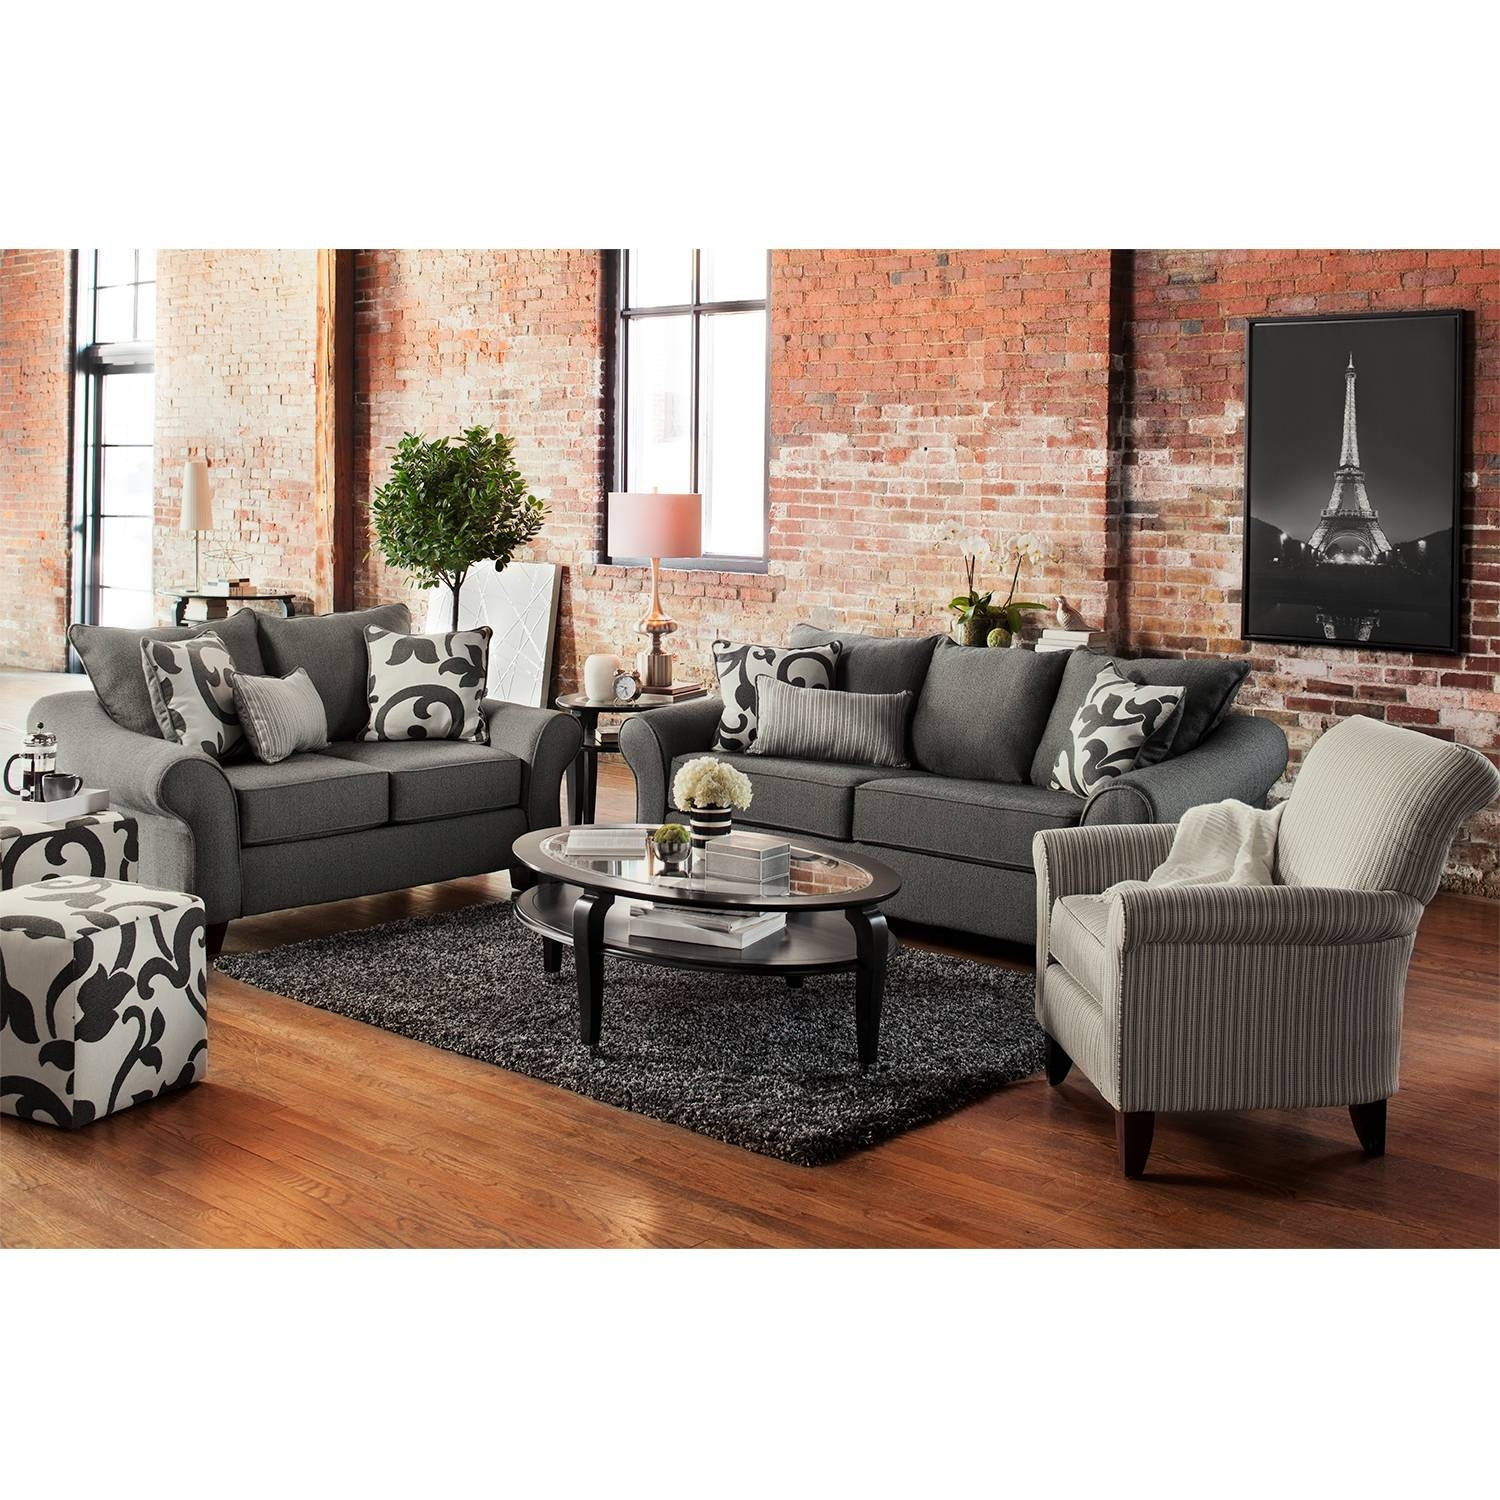 Fresh Gray Sofa 93 On Sofas And Couches Ideas With Gray Sofa within Gray Sofas (Image 10 of 15)